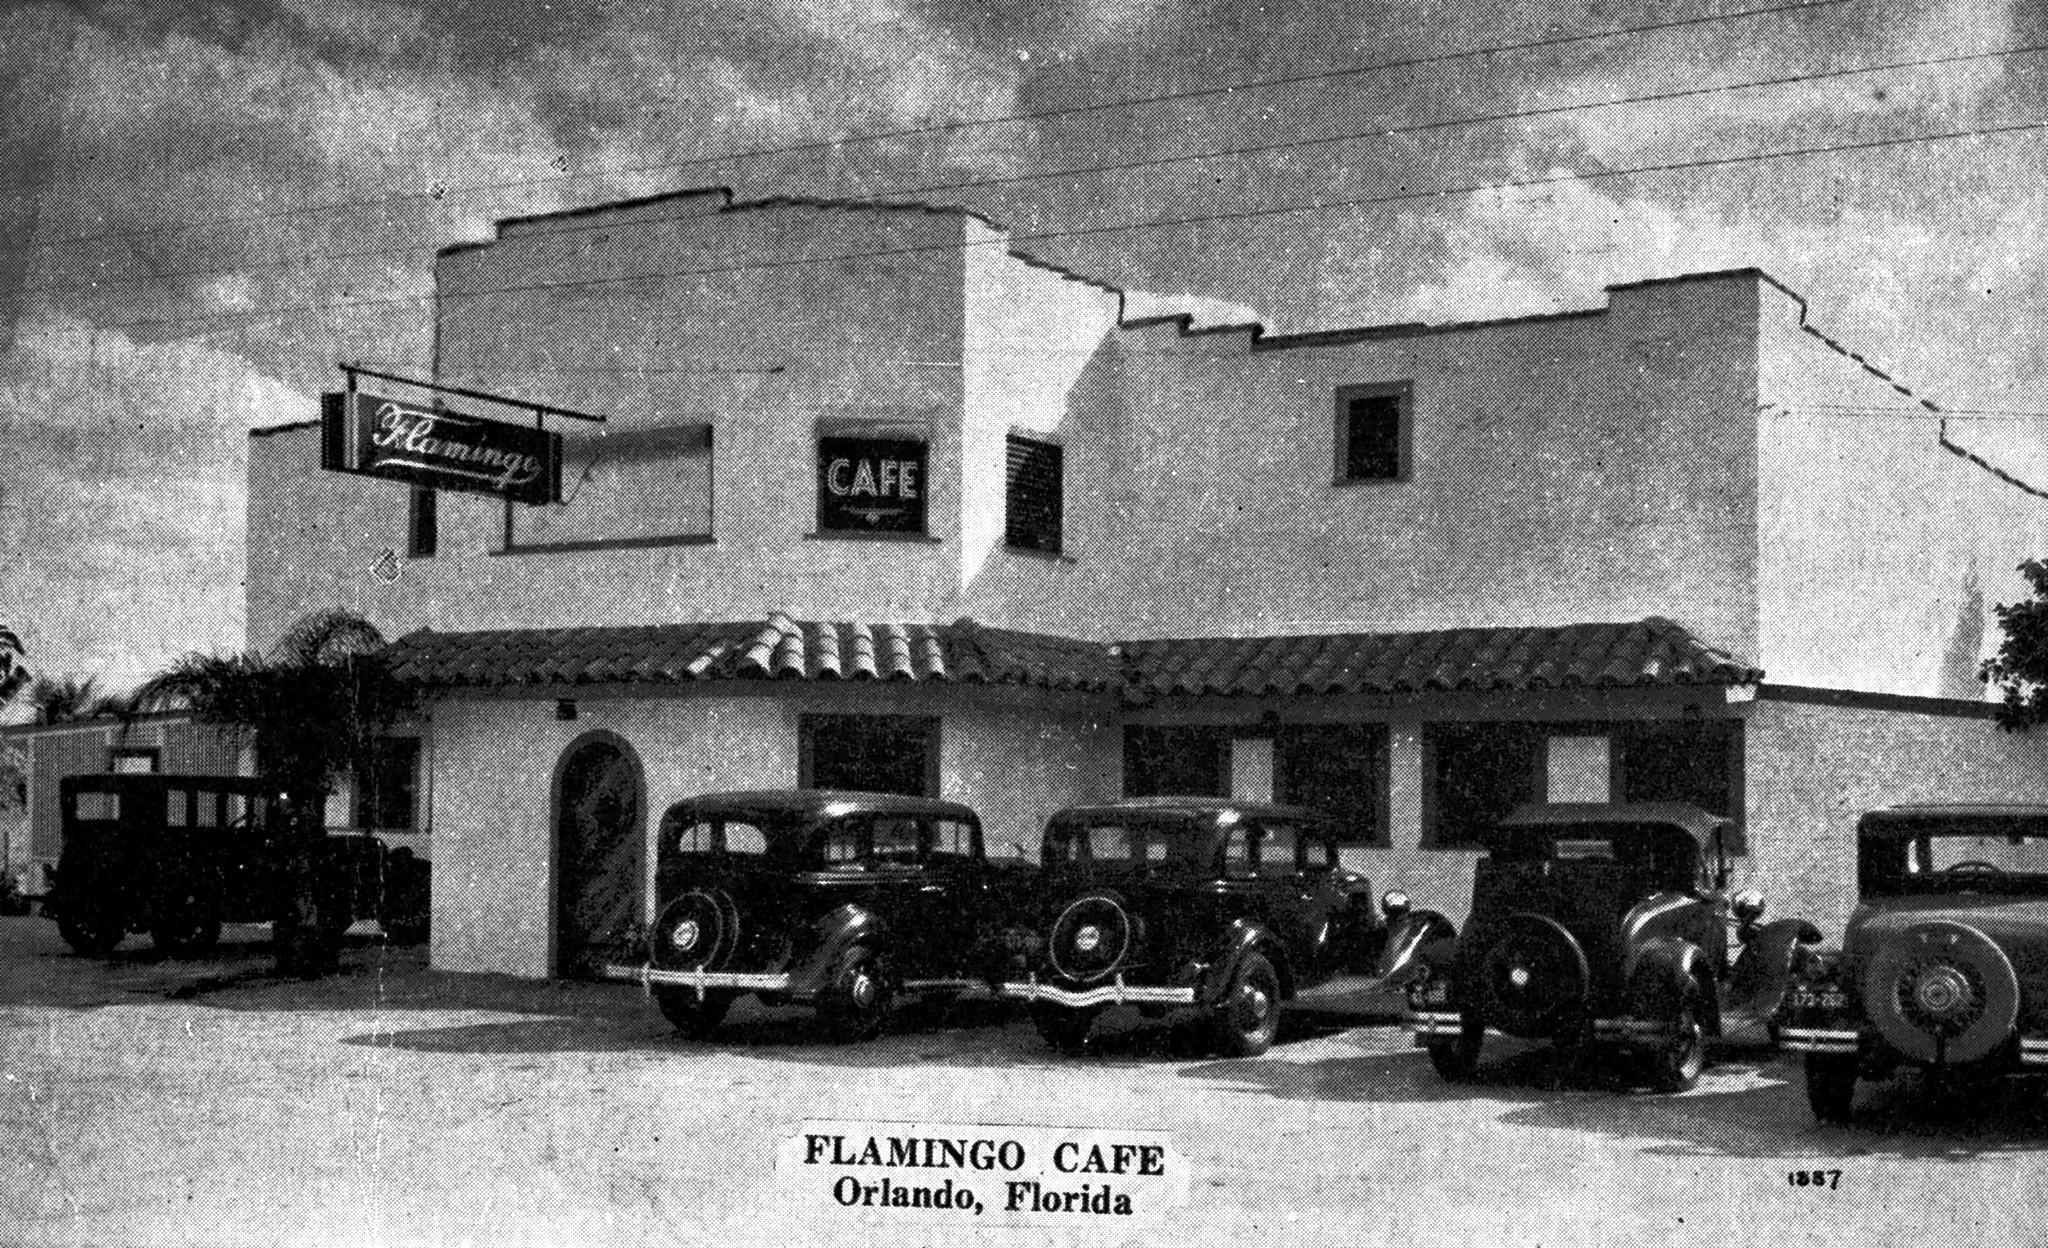 Orlando's long-gone Flamingo Club, born during Prohibition, looks quiet in a 1930s postcard scene. But the place really jumped with back-stage casino gambling on Saturday nights, according to memories published in 1957. The club was on what's now East Colonial Drive, about where Herndon Plaza sits.